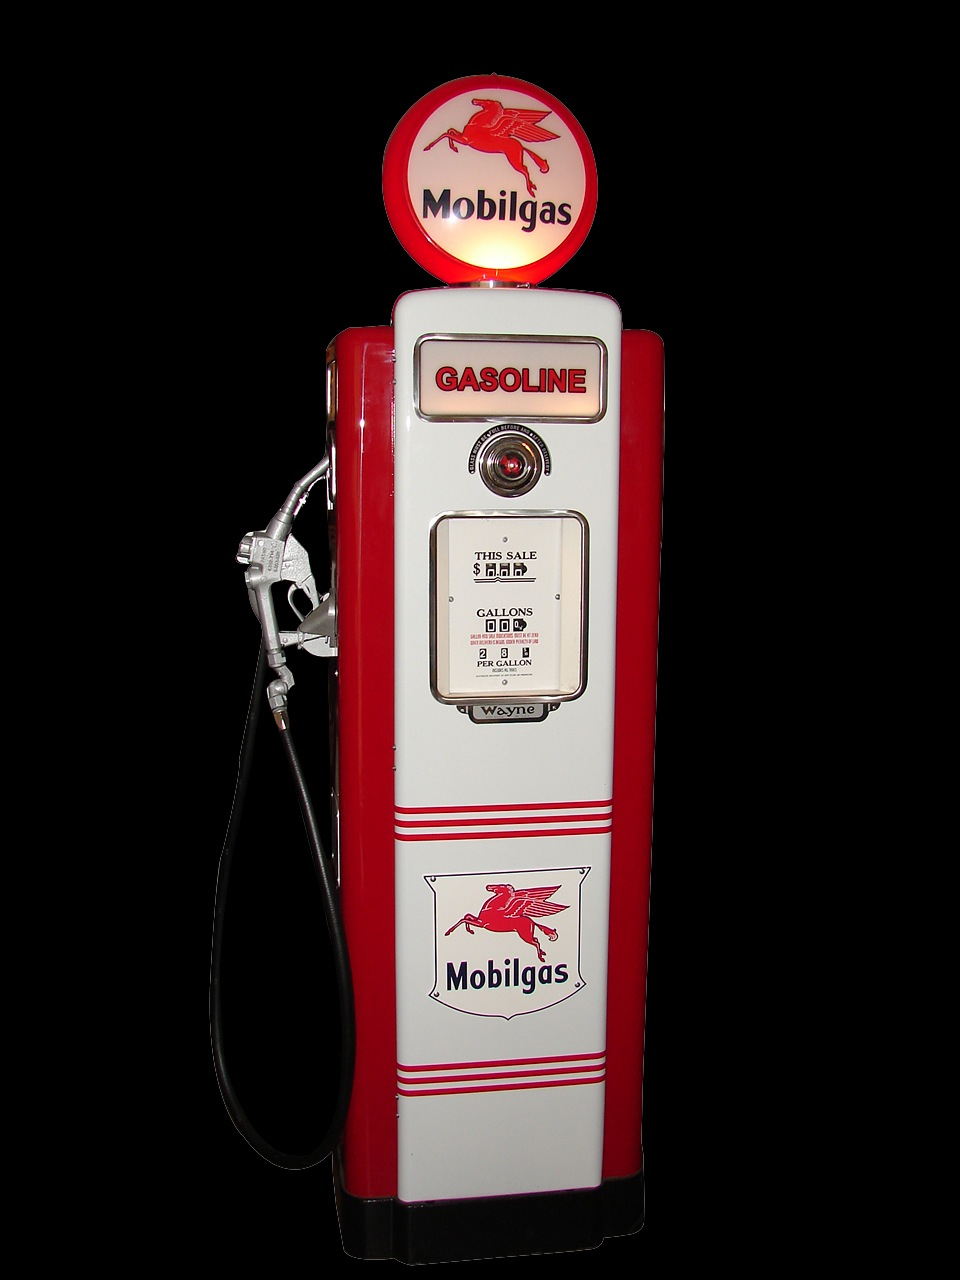 1947 Mobil Wayne 70 restored service station gas pump. - Front 3/4 - 79552